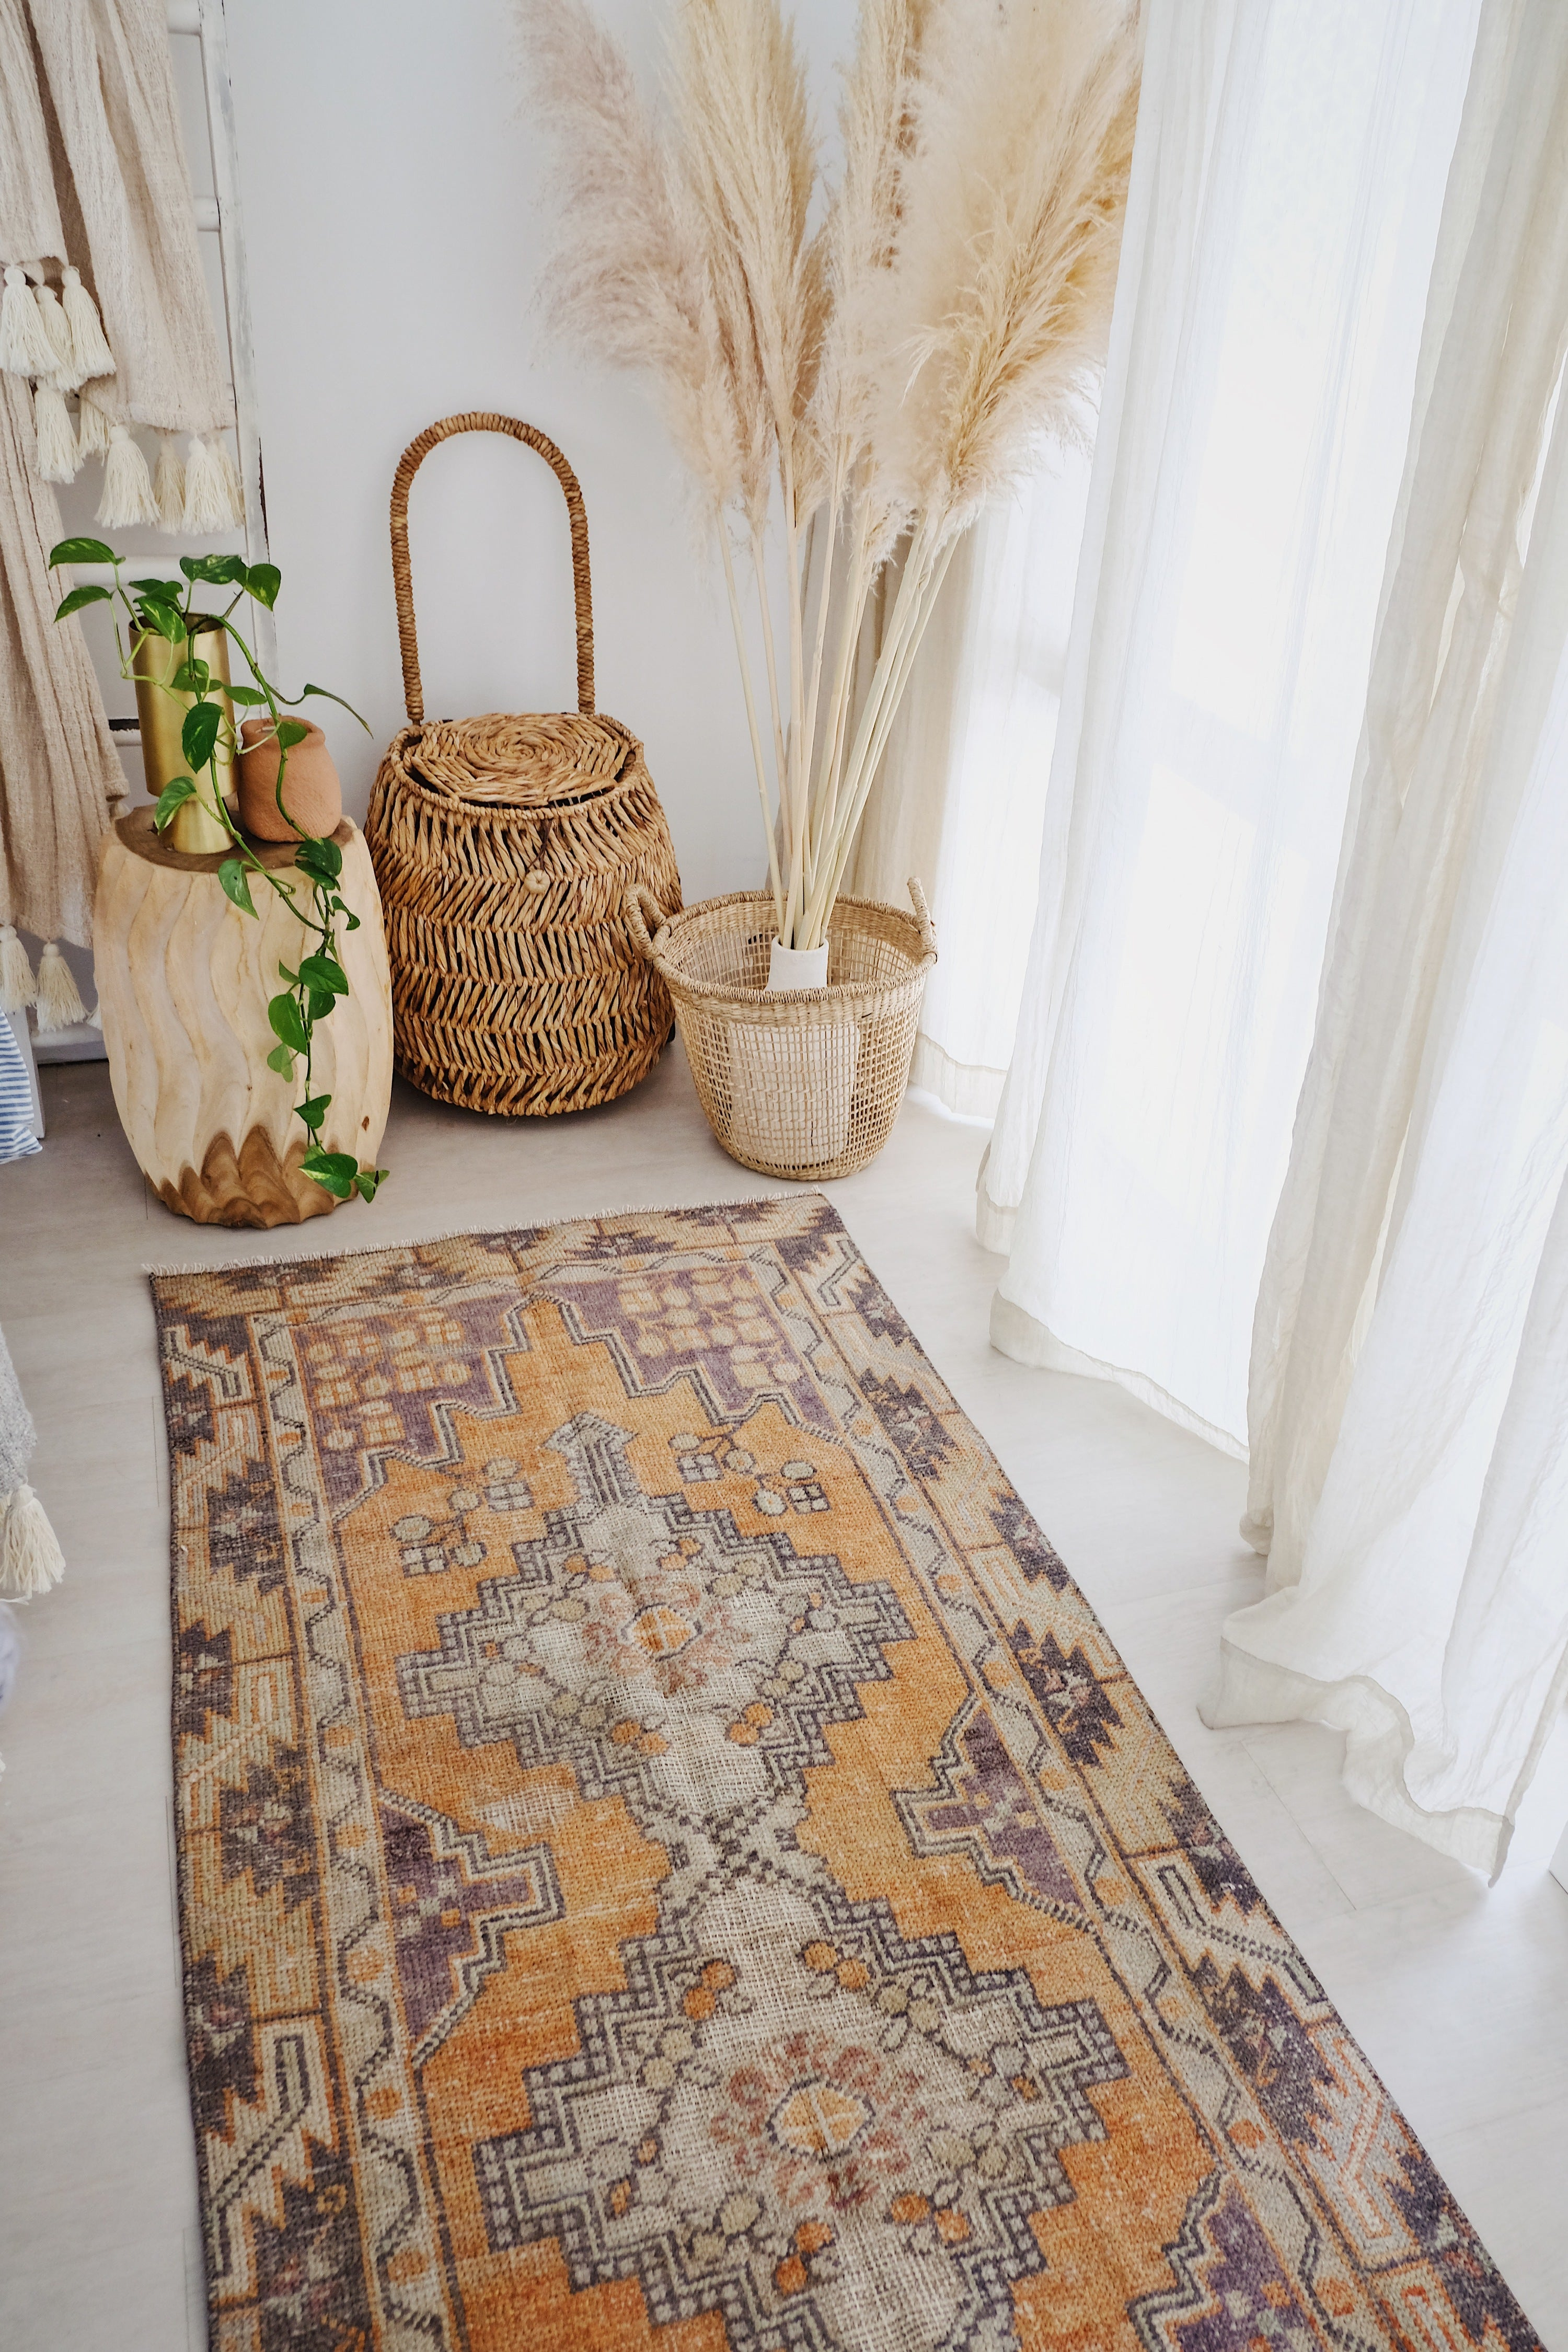 Apricot Lavender Handwoven Turkish Hallway Kitchen Runner Rug - Lustere Living